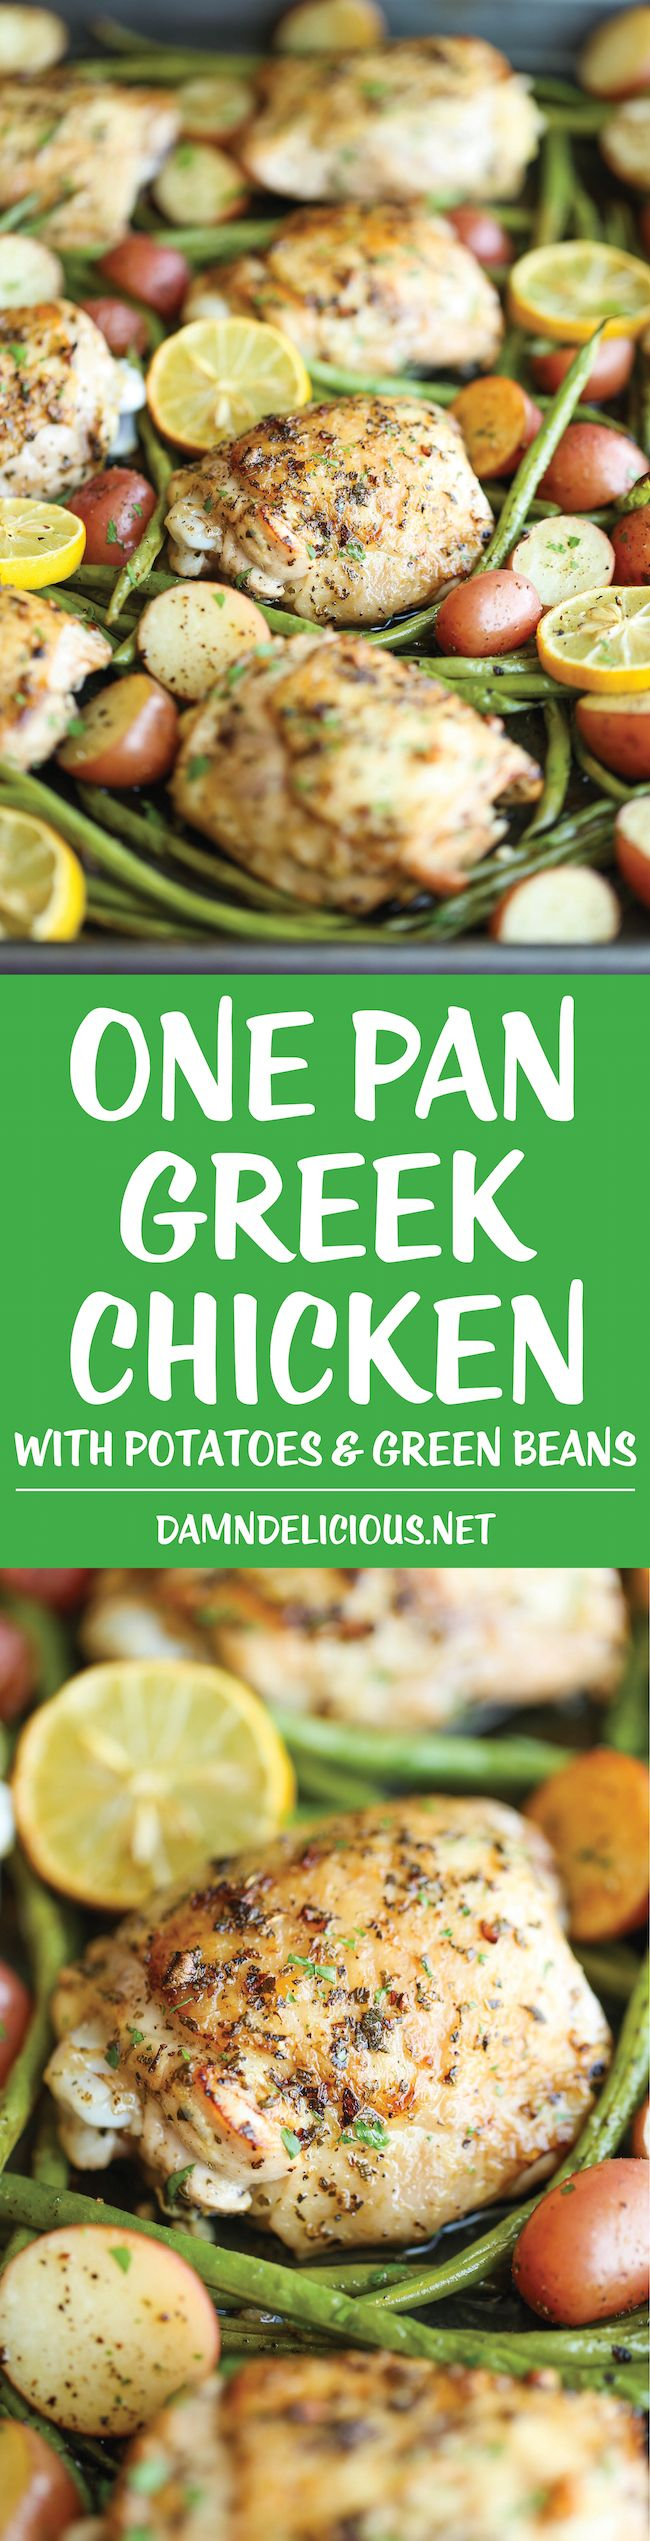 One Pan Greek Chicken - The easiest no-fuss weeknight meal with a simple Greek…